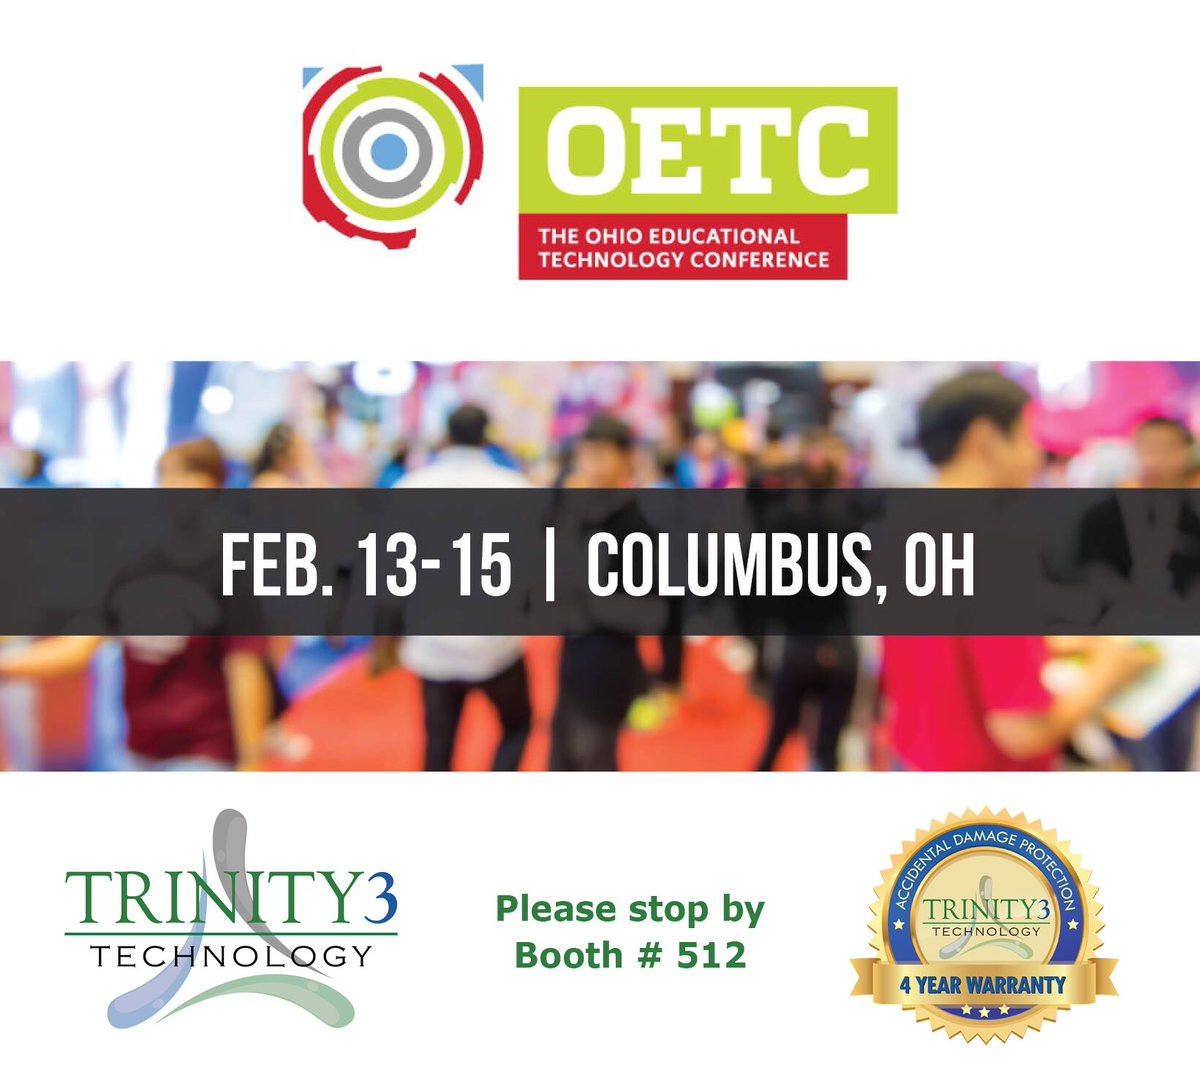 We will be at #OETC18 February 13th-15th at booth #512! Come and say hi to Erica and learn what Trinity3 has to offer! @OhioEdTech #techtuesday https://t.co/qLzXLfL1bo